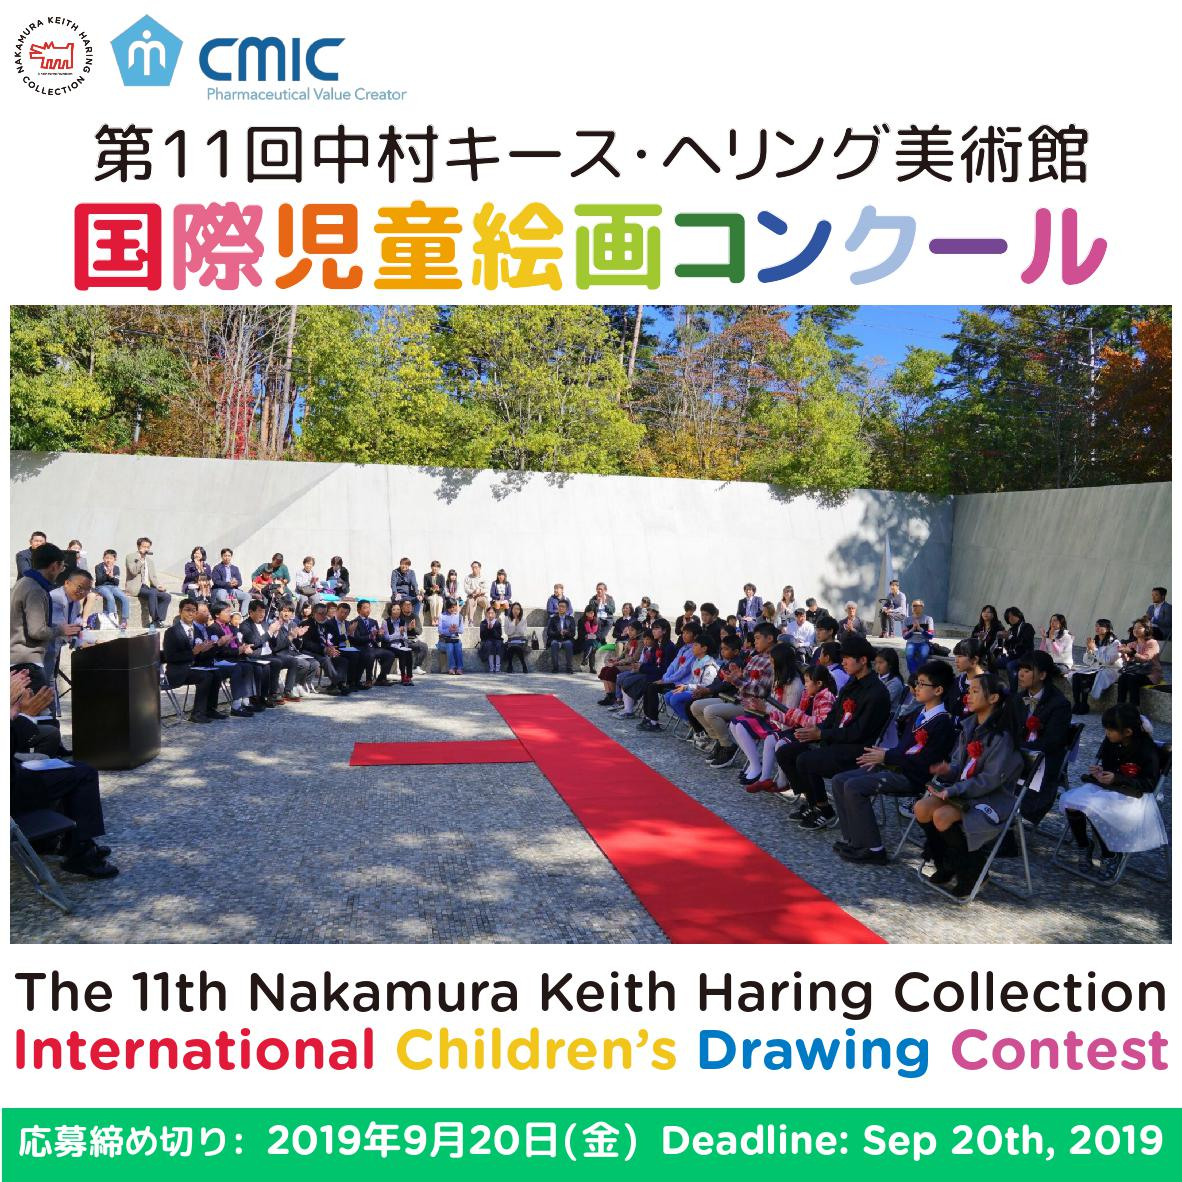 The 11th Nakamura Keith Haring Collection International Drawing Contest